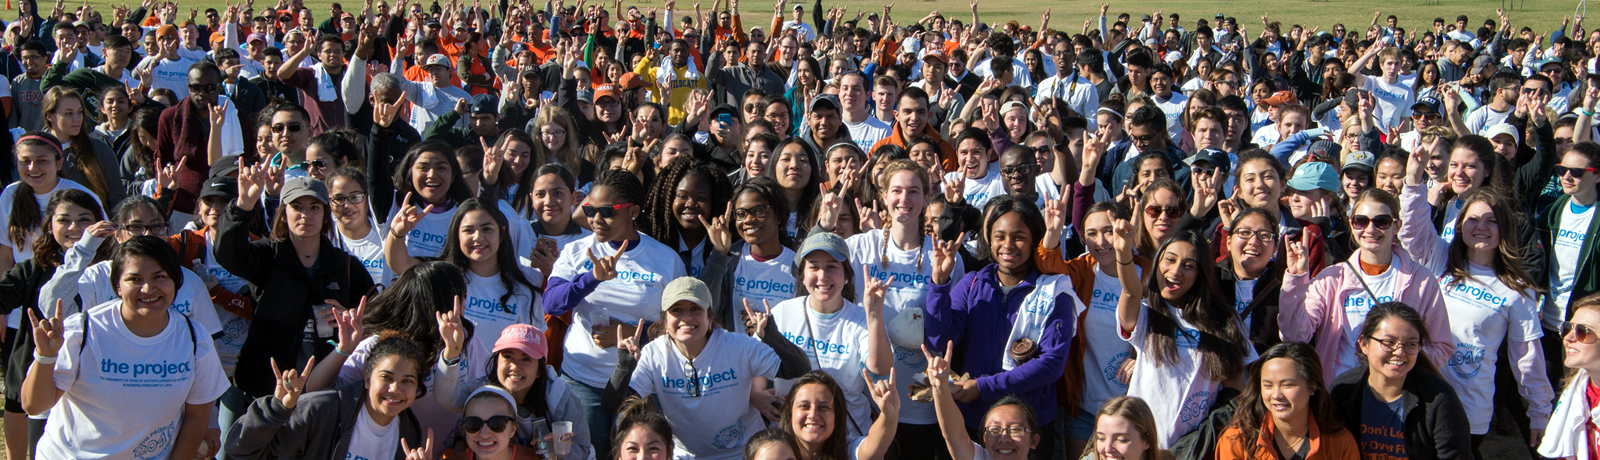 UT Austin Earns National Recognition for Diversity and Inclusion